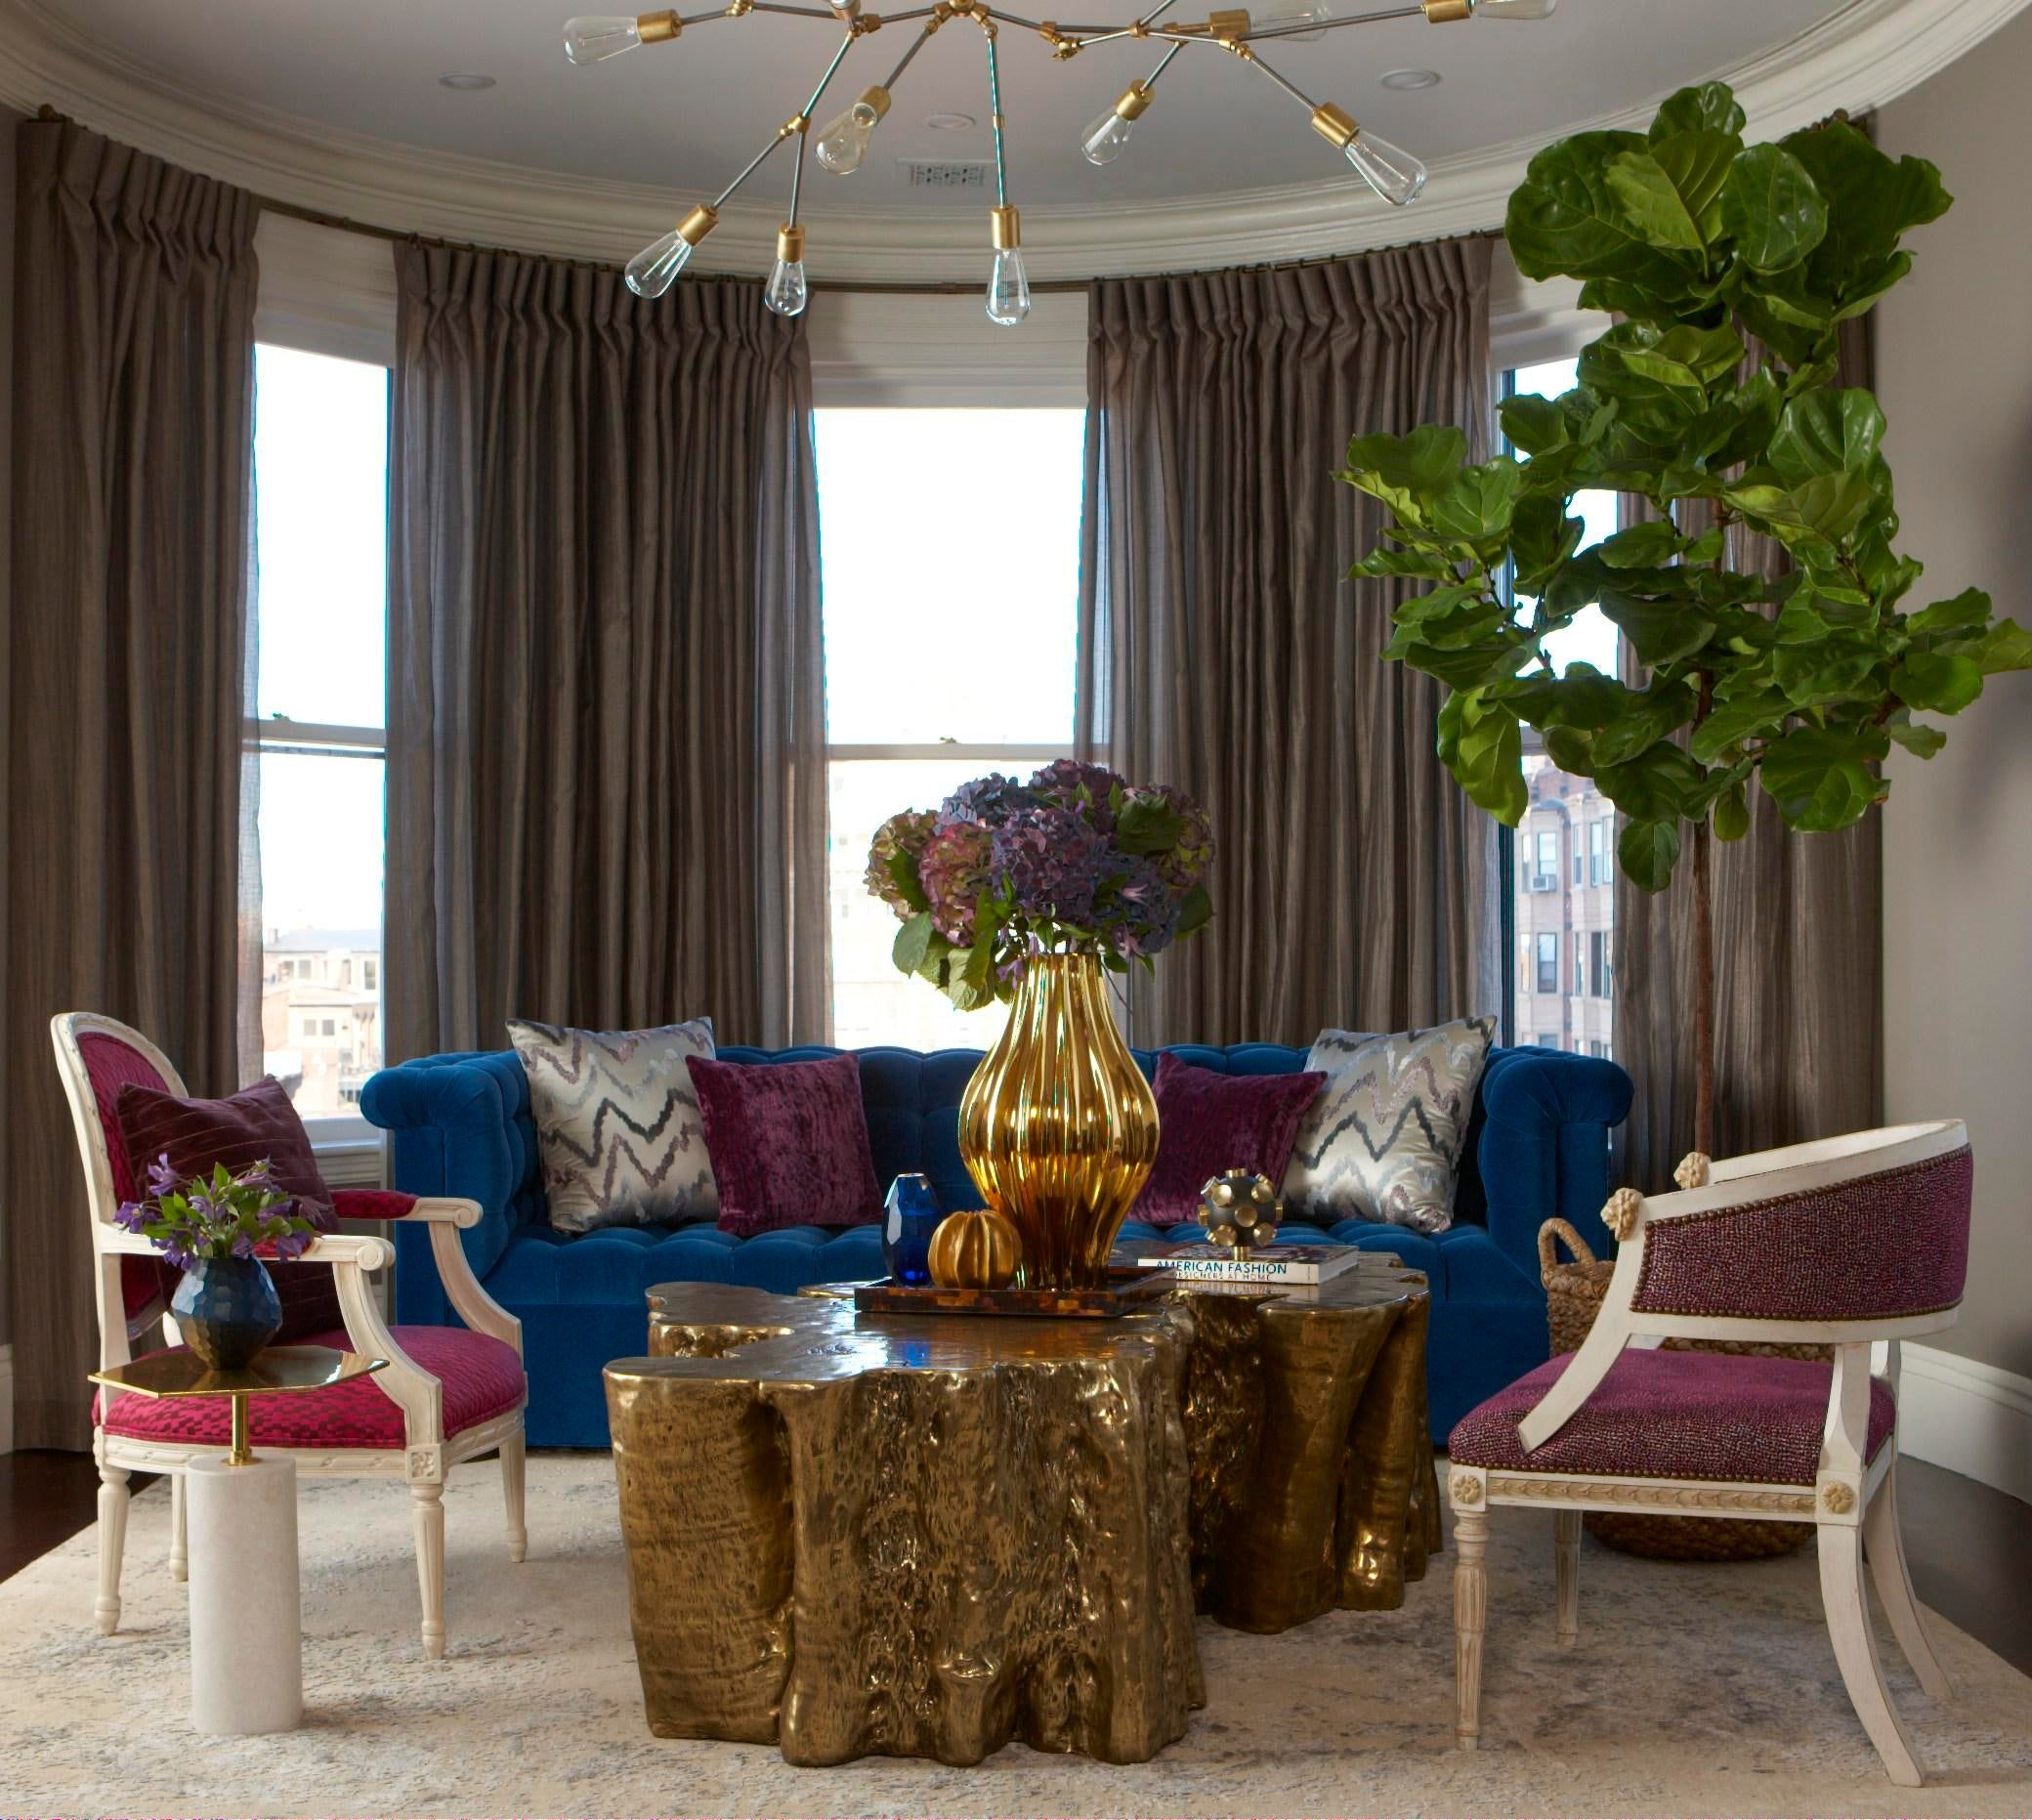 Back Bay Penthouse Living Contemporary Modern Eclectic Transitional By Rachel  Reider Interiors